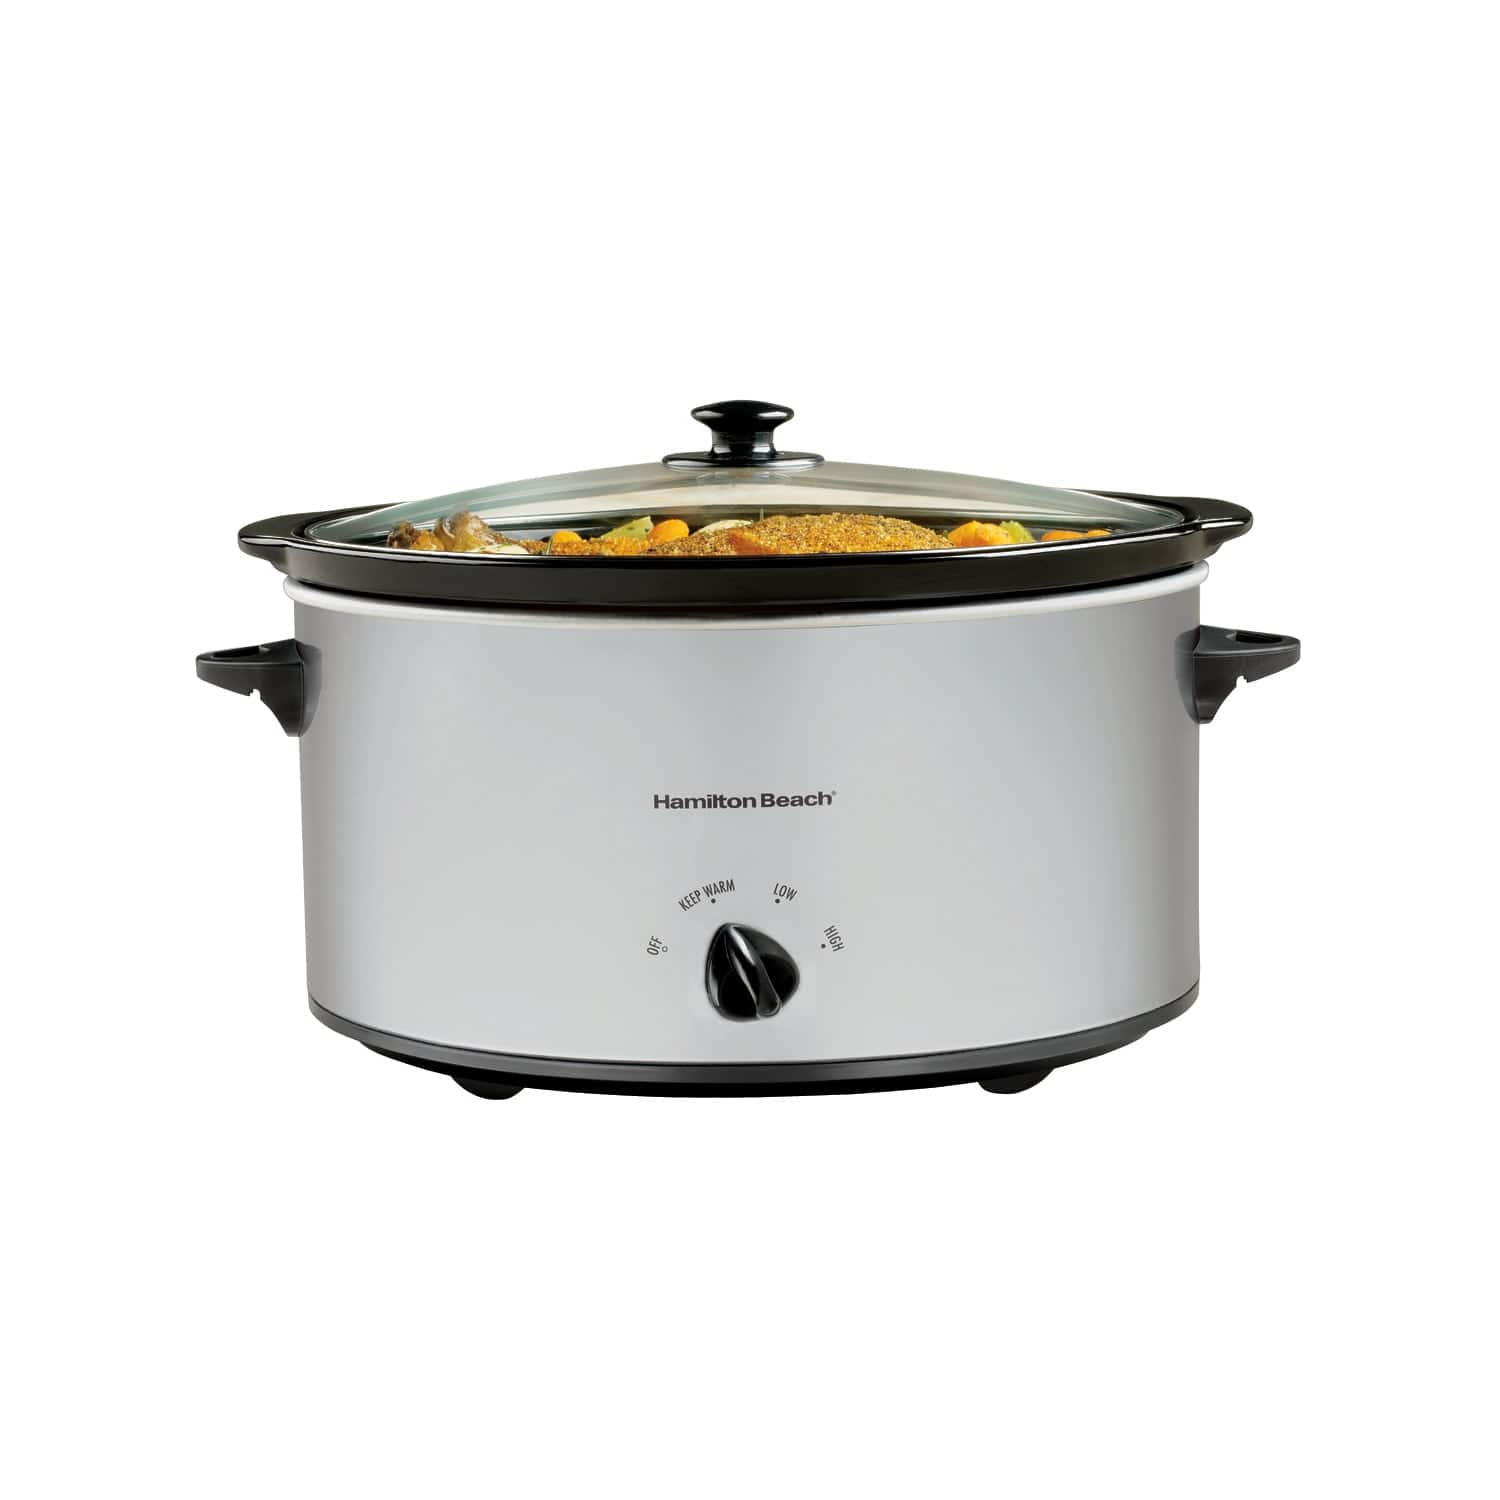 KOHLS Free Ship - any payment  Nov 25 1-3AM ET Any Three Small Kitchen Items Listed (Crock Pot, Waffle Iron, Griddle, etc) $49.50 get back $36 in Visa Rebate and $15 Kohls Cash